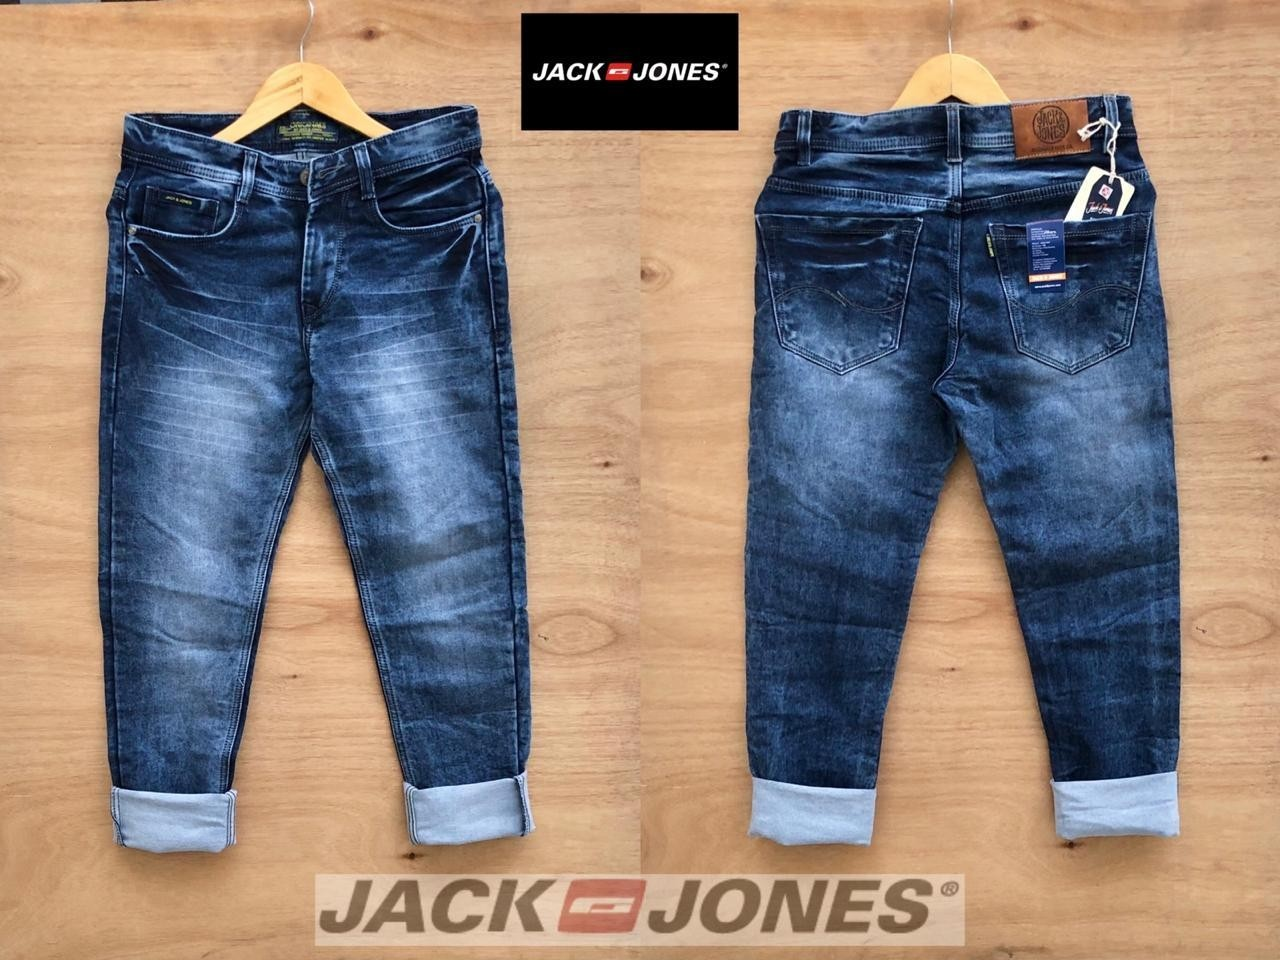 JACK N JONES DENIM